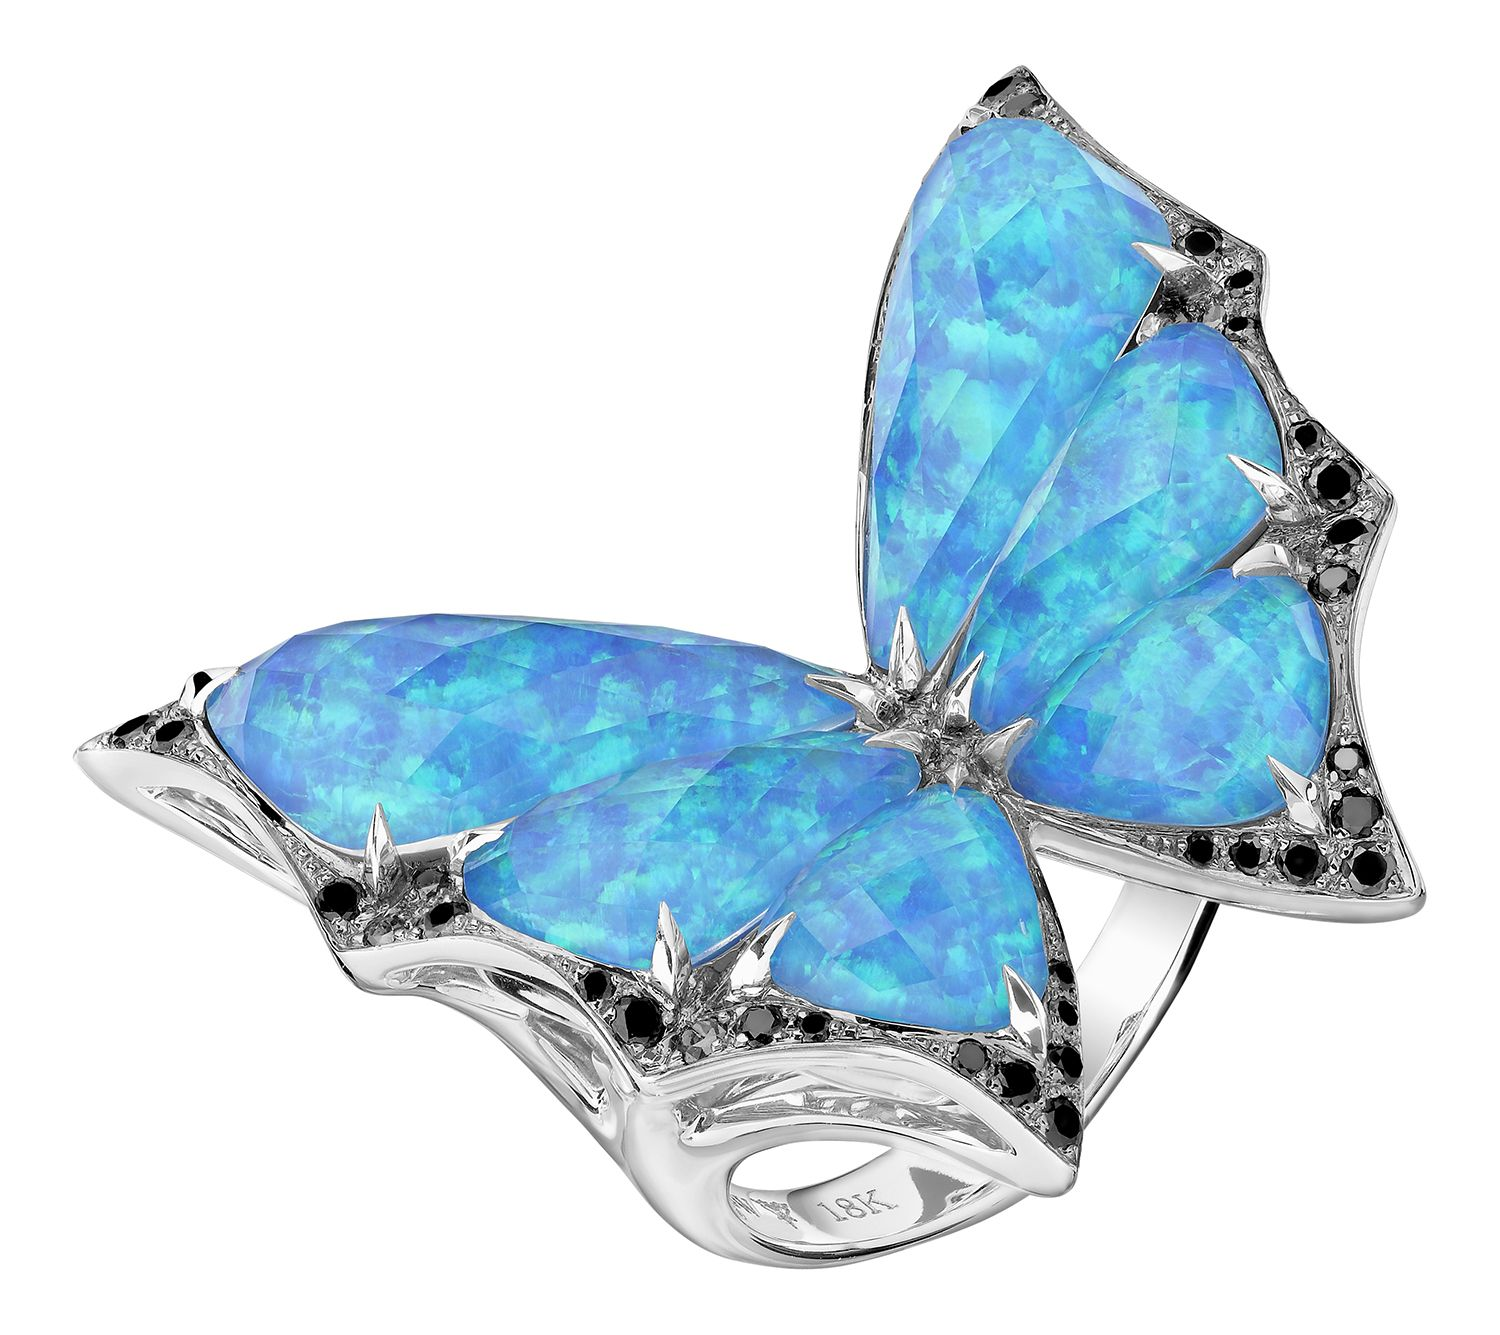 3aaab52d5092 Stephen Webster Fly By Night Cocktail Ring in Black Opal Crystal Haze.   opal  butterfly  jewelry